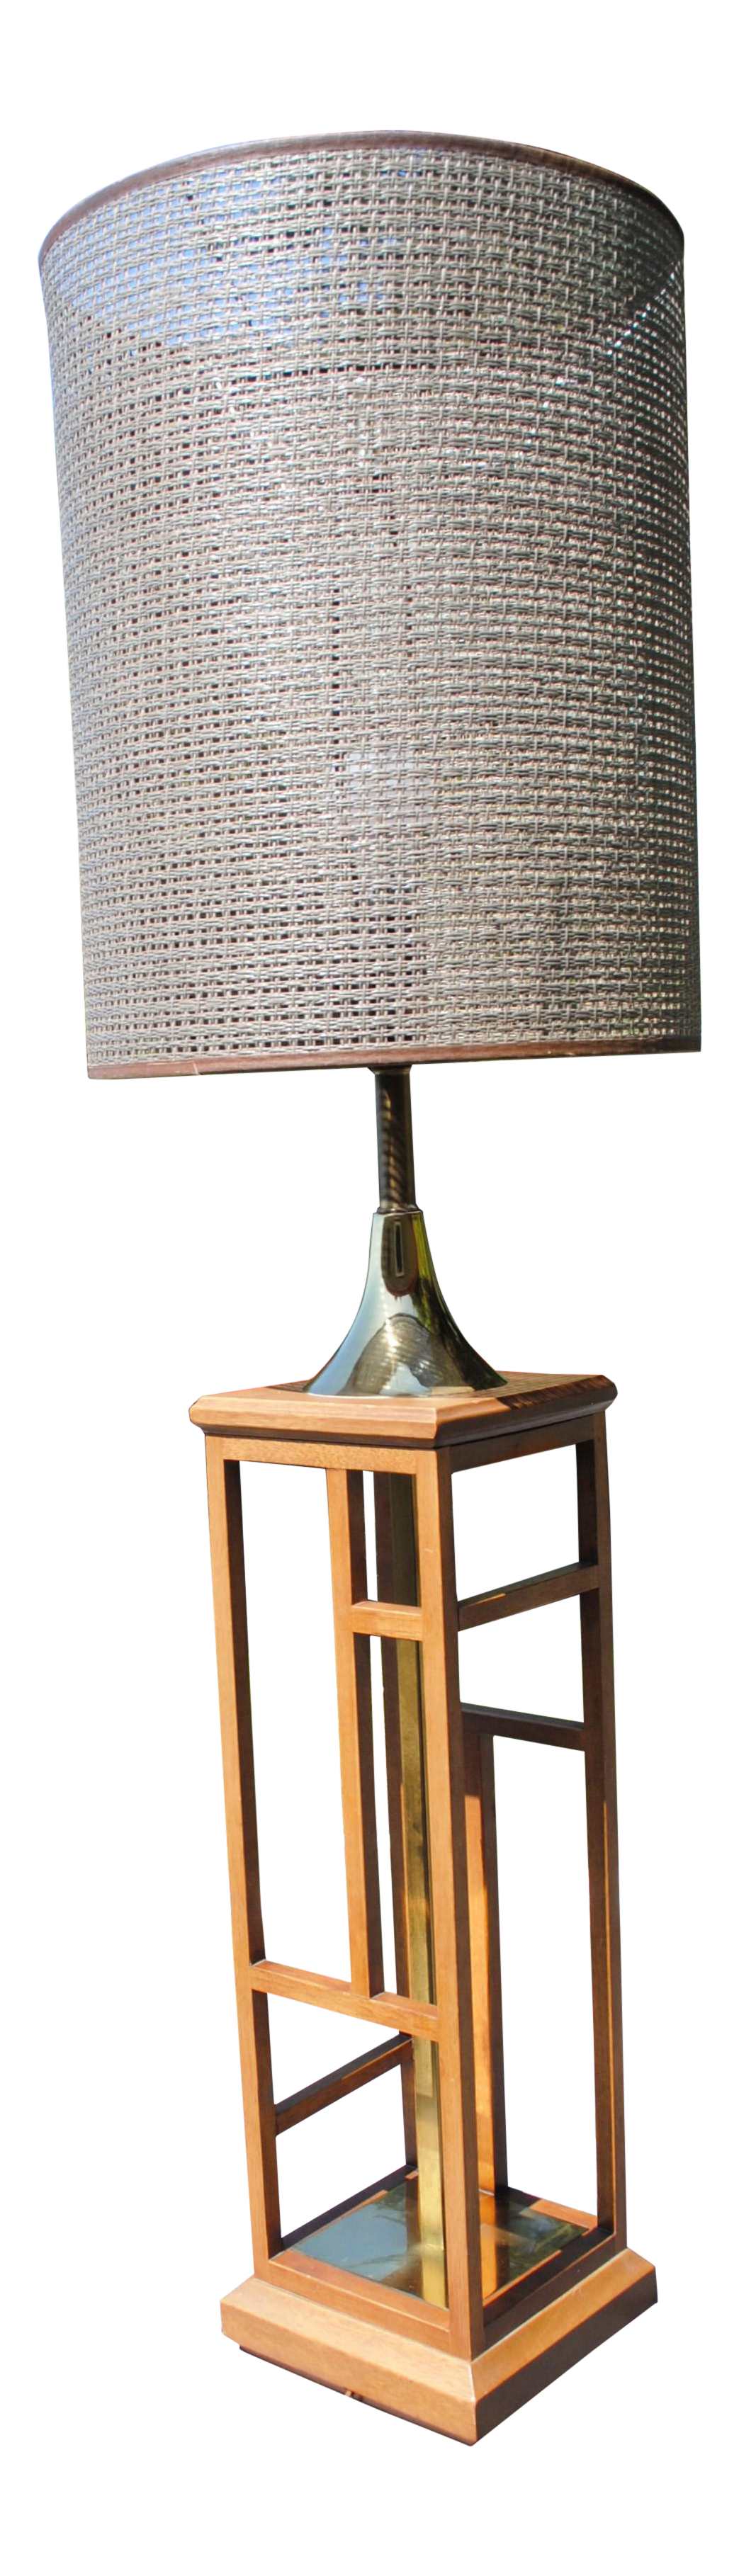 Mid Century Modern Tall Table Lamp in Wood /& Brass